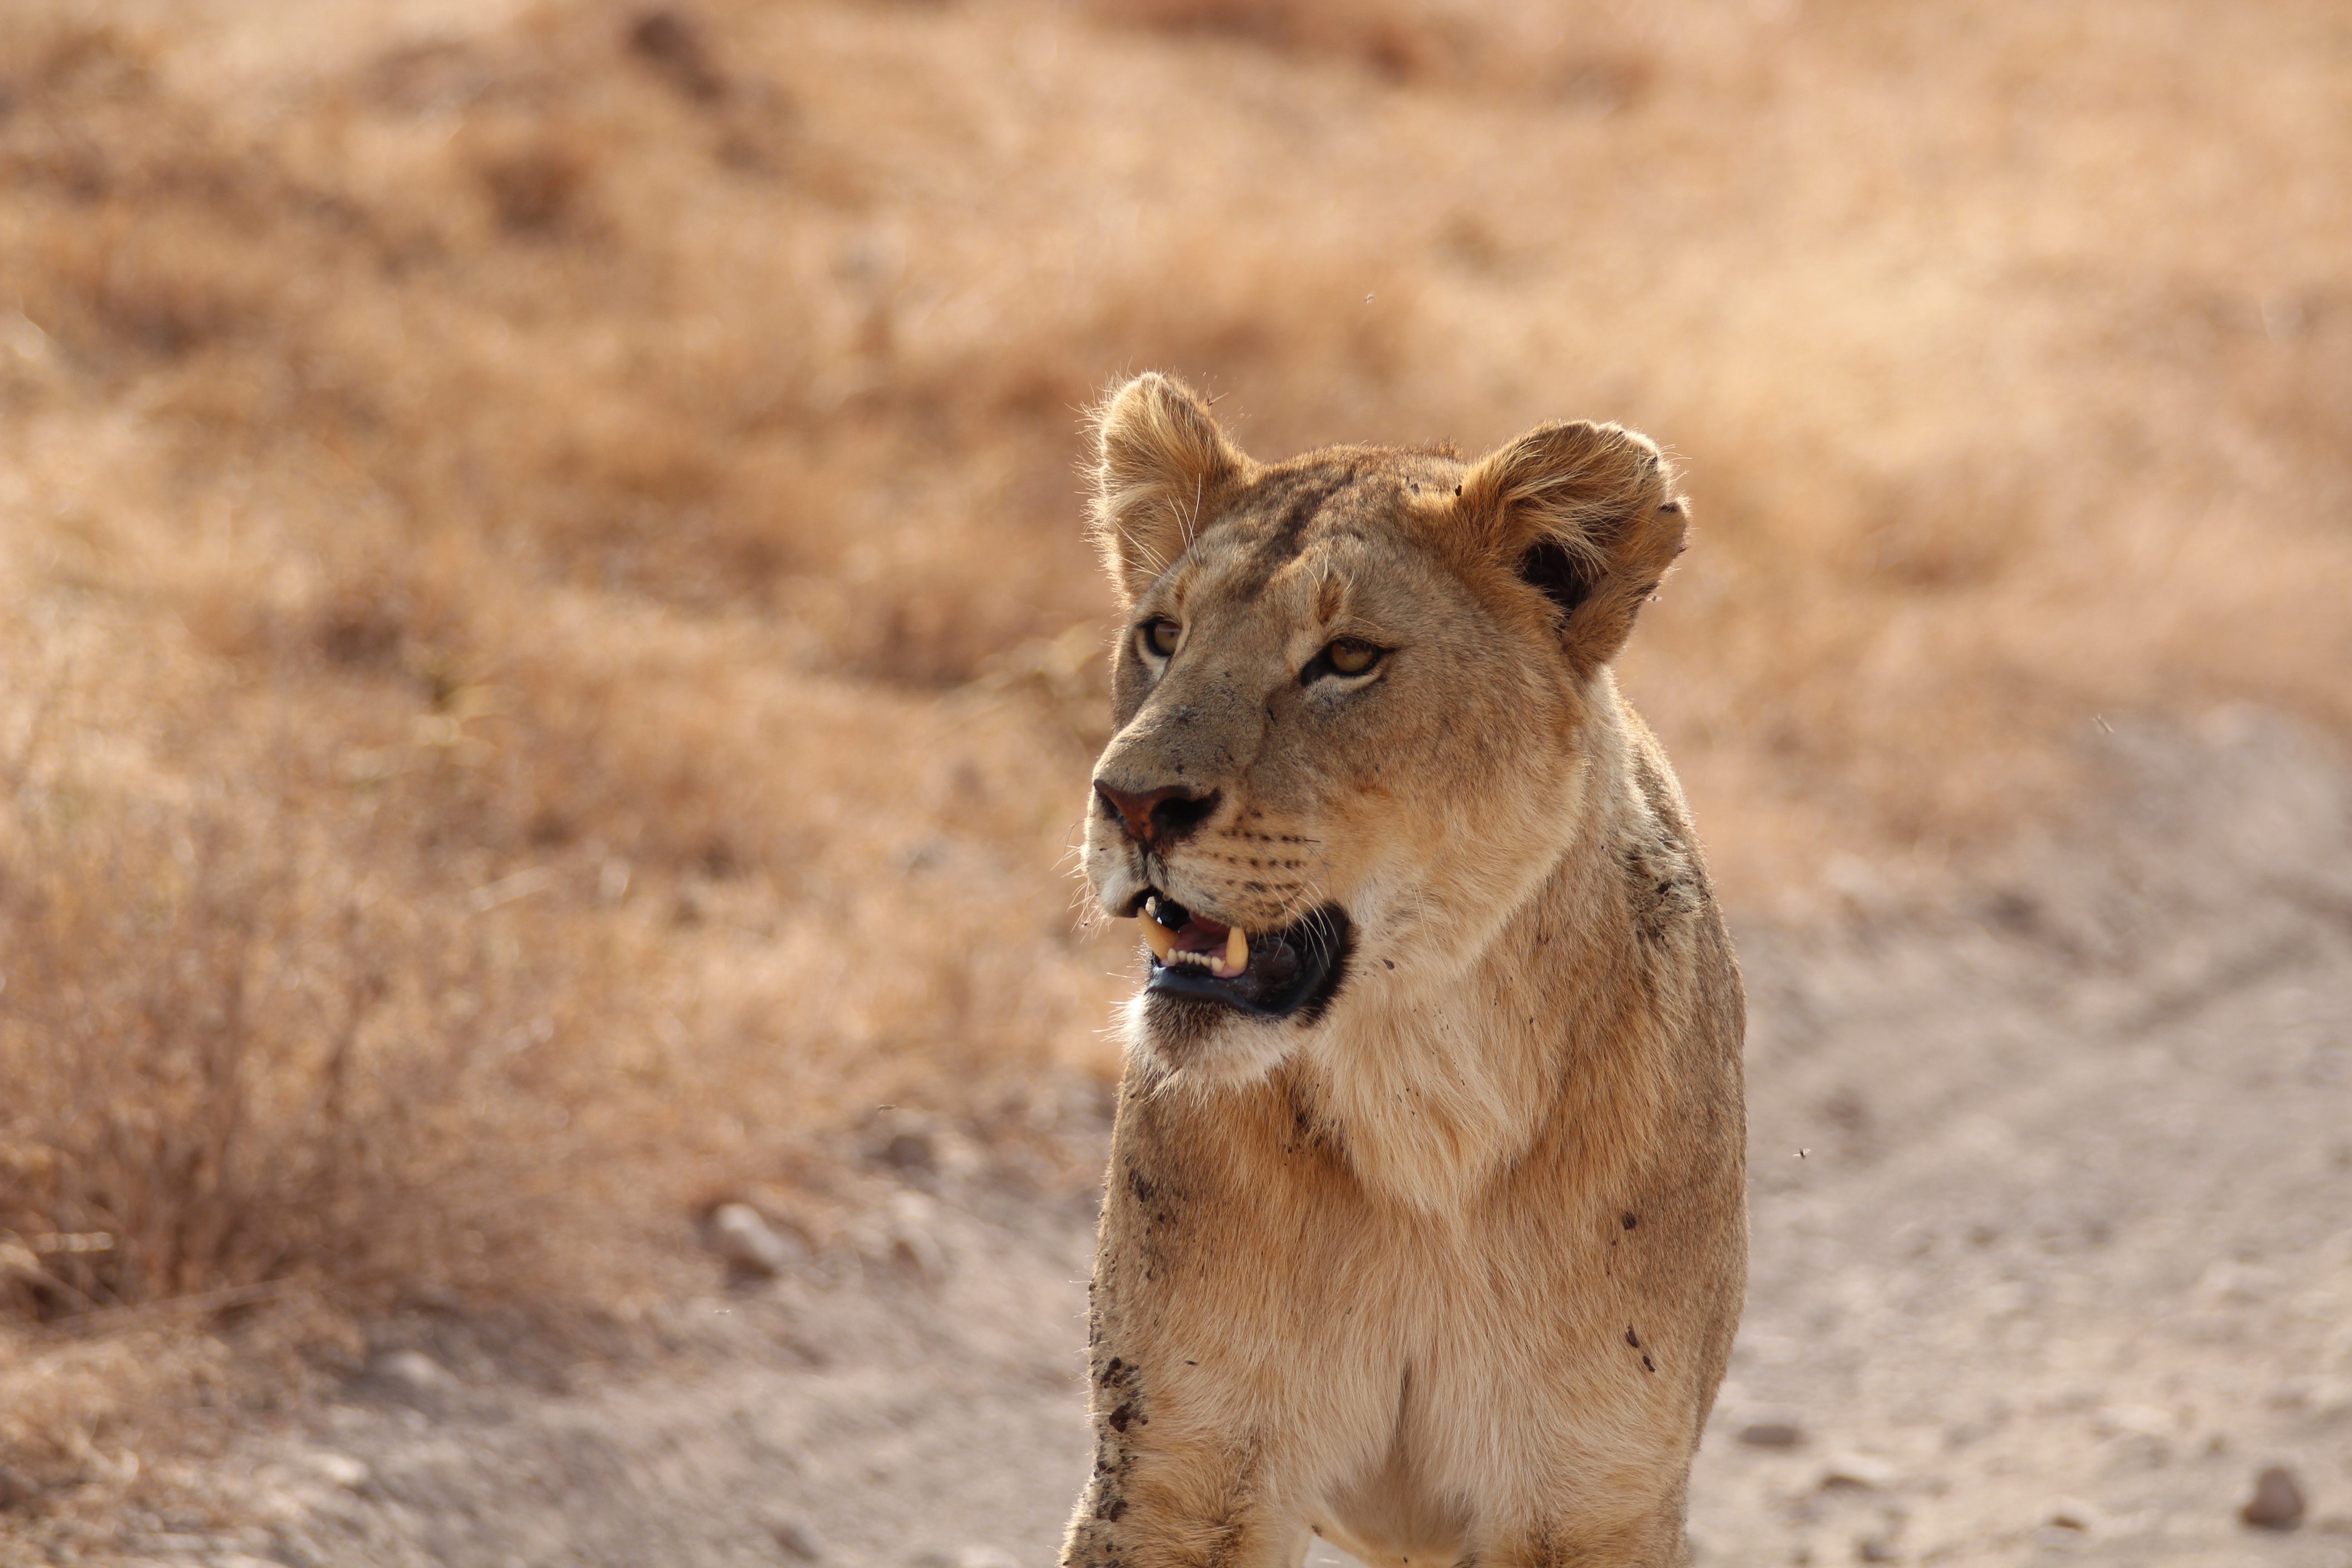 56185 download wallpaper Animals, Lioness, Predator, Lion, Grin screensavers and pictures for free